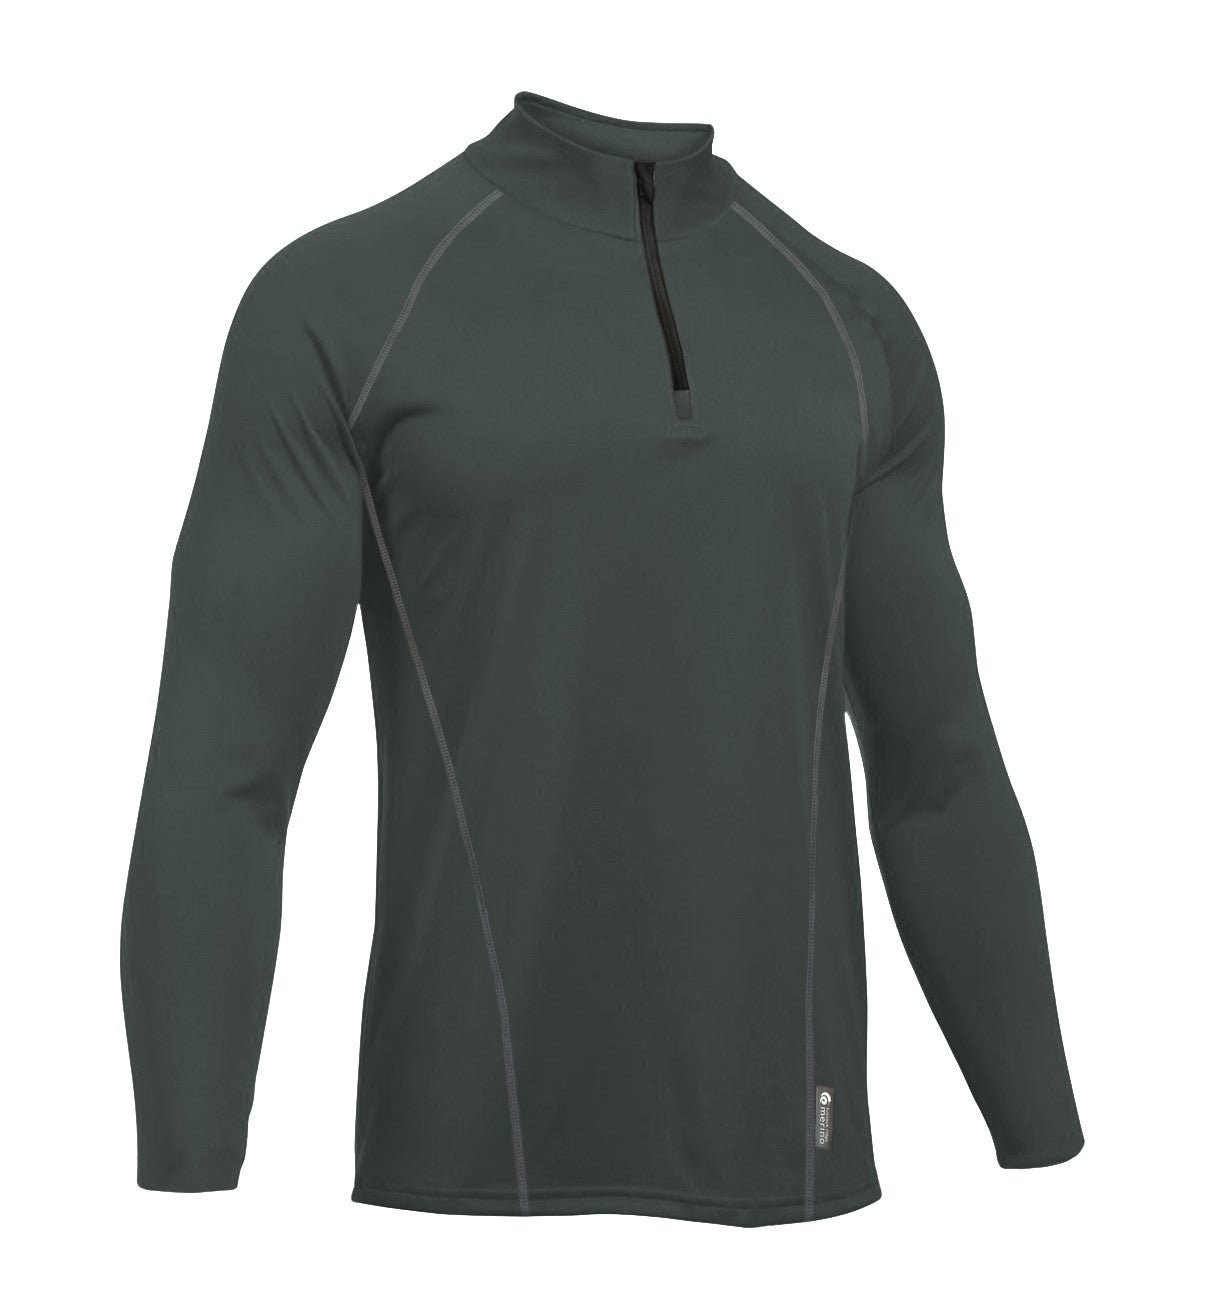 Merino Men's Charcoal Light-weight Half Zip. Made in New Zealand